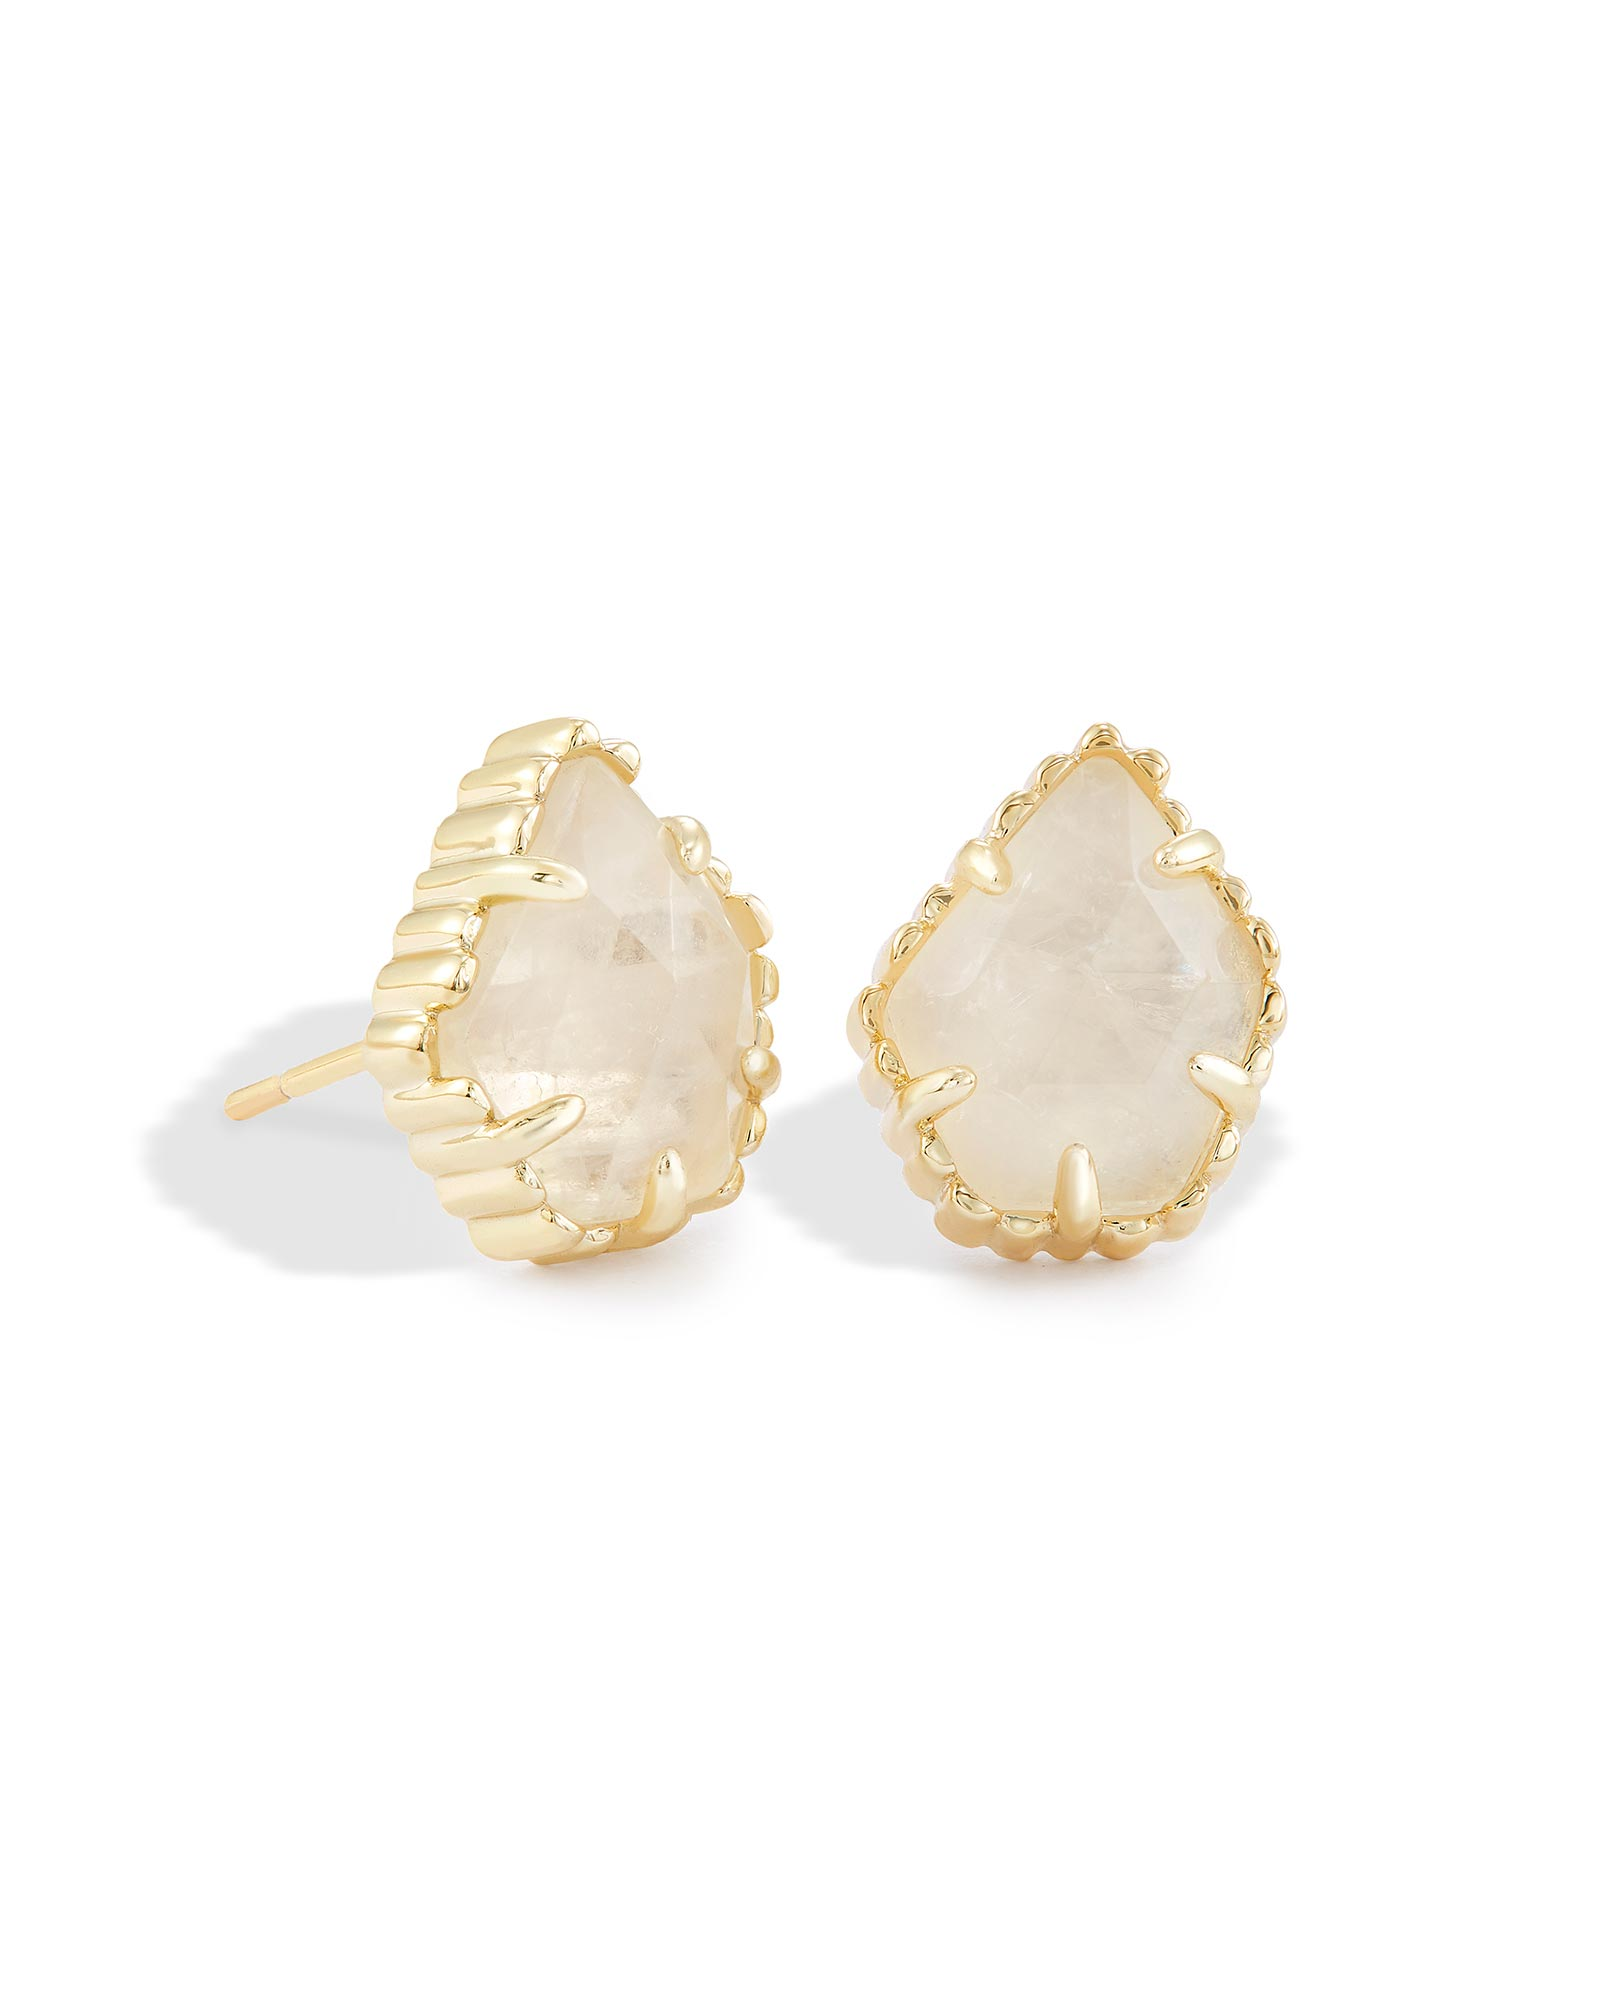 Tessa Stud Earrings in Rock Crystal